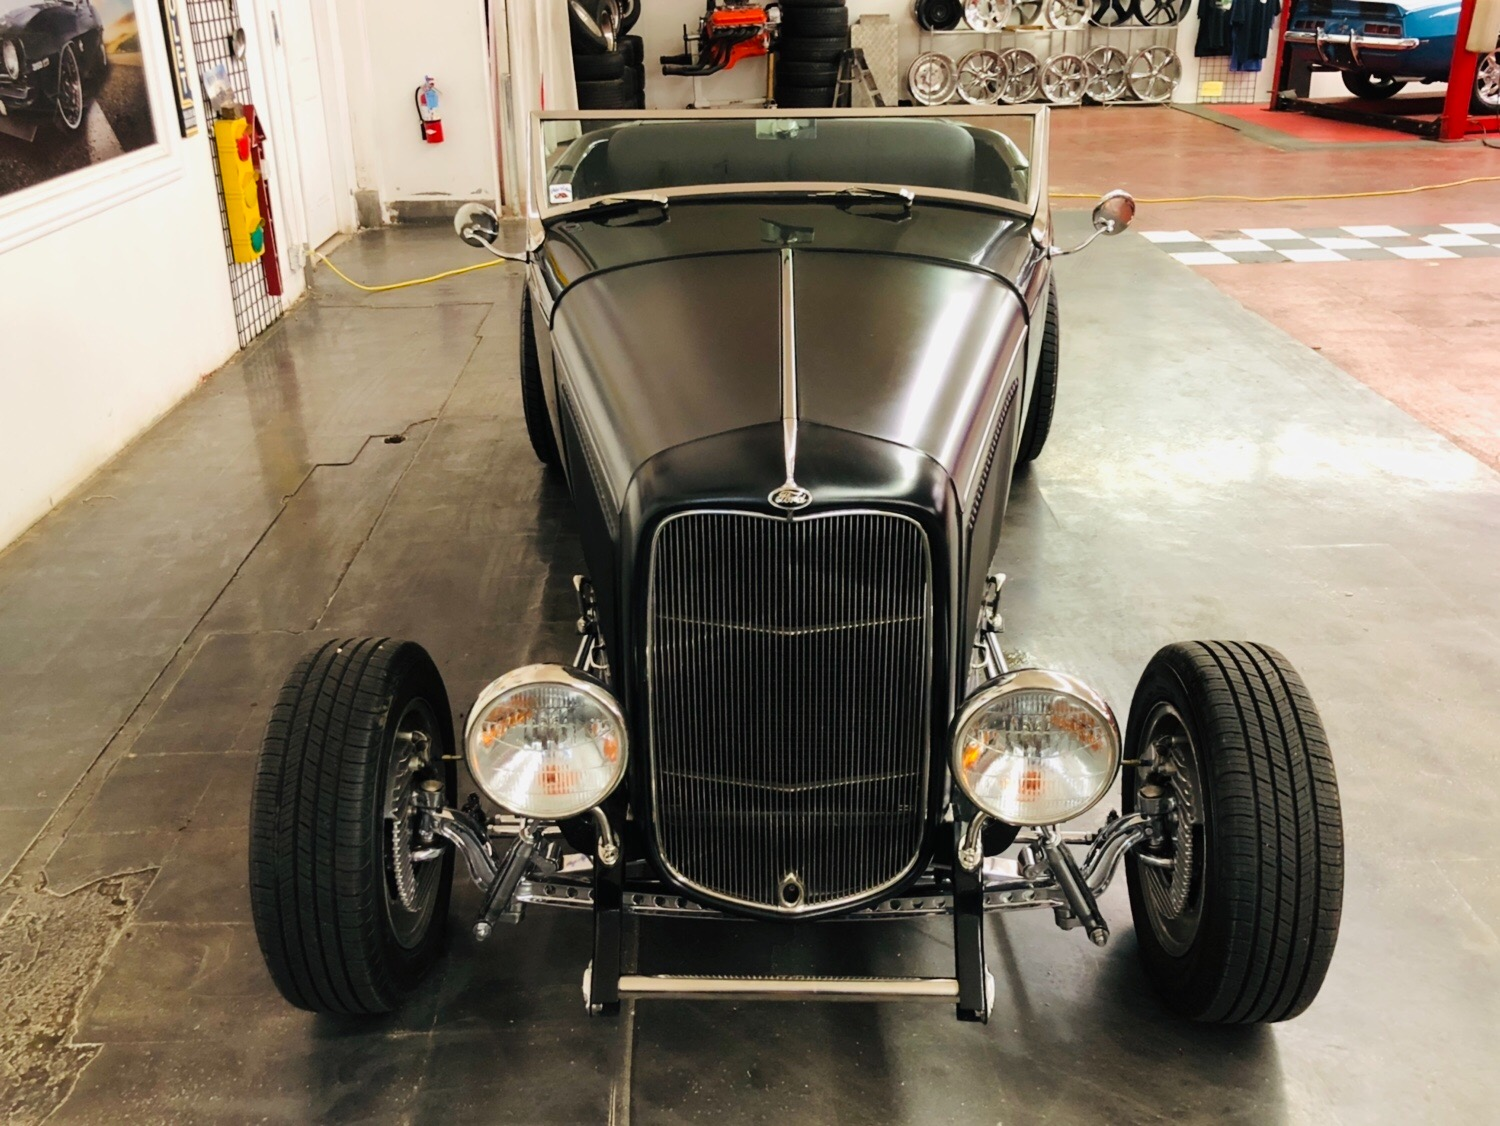 Used 1932 Ford Hot Rod / Street Rod - DEARBORN DEUCE - FOLDING TOP - DOWNS BODY - SEE VIDEO | Mundelein, IL